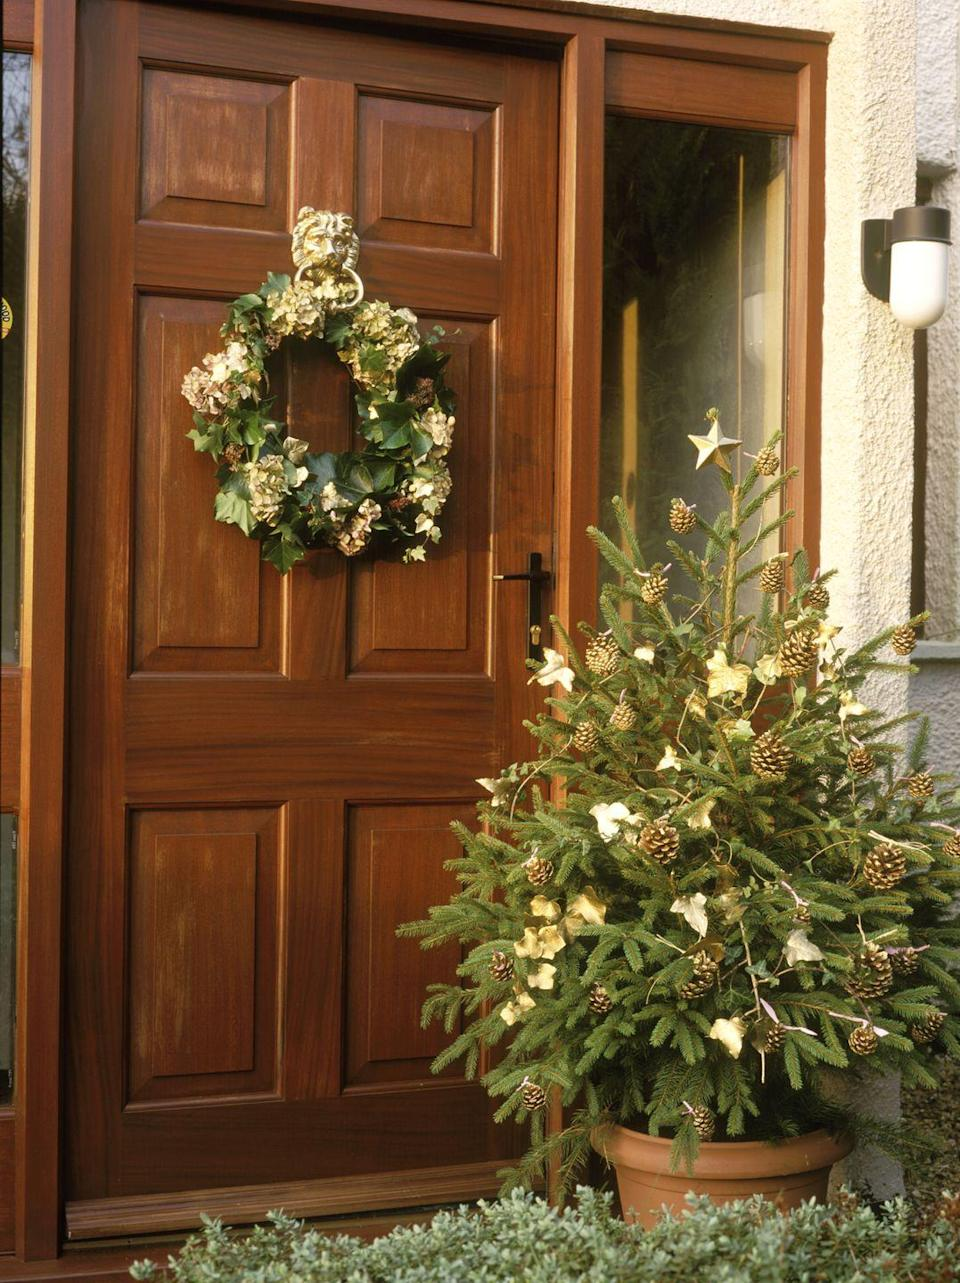 <p>To dazzle guests from the moment they arrive, incorporate gilded pinecones into your outdoor vignettes, by either adorning your door with a gold pinecone wreath or accenting fresh greenery with gold pinecone ornaments. It's an elevated approach to a classic winter motif. </p>